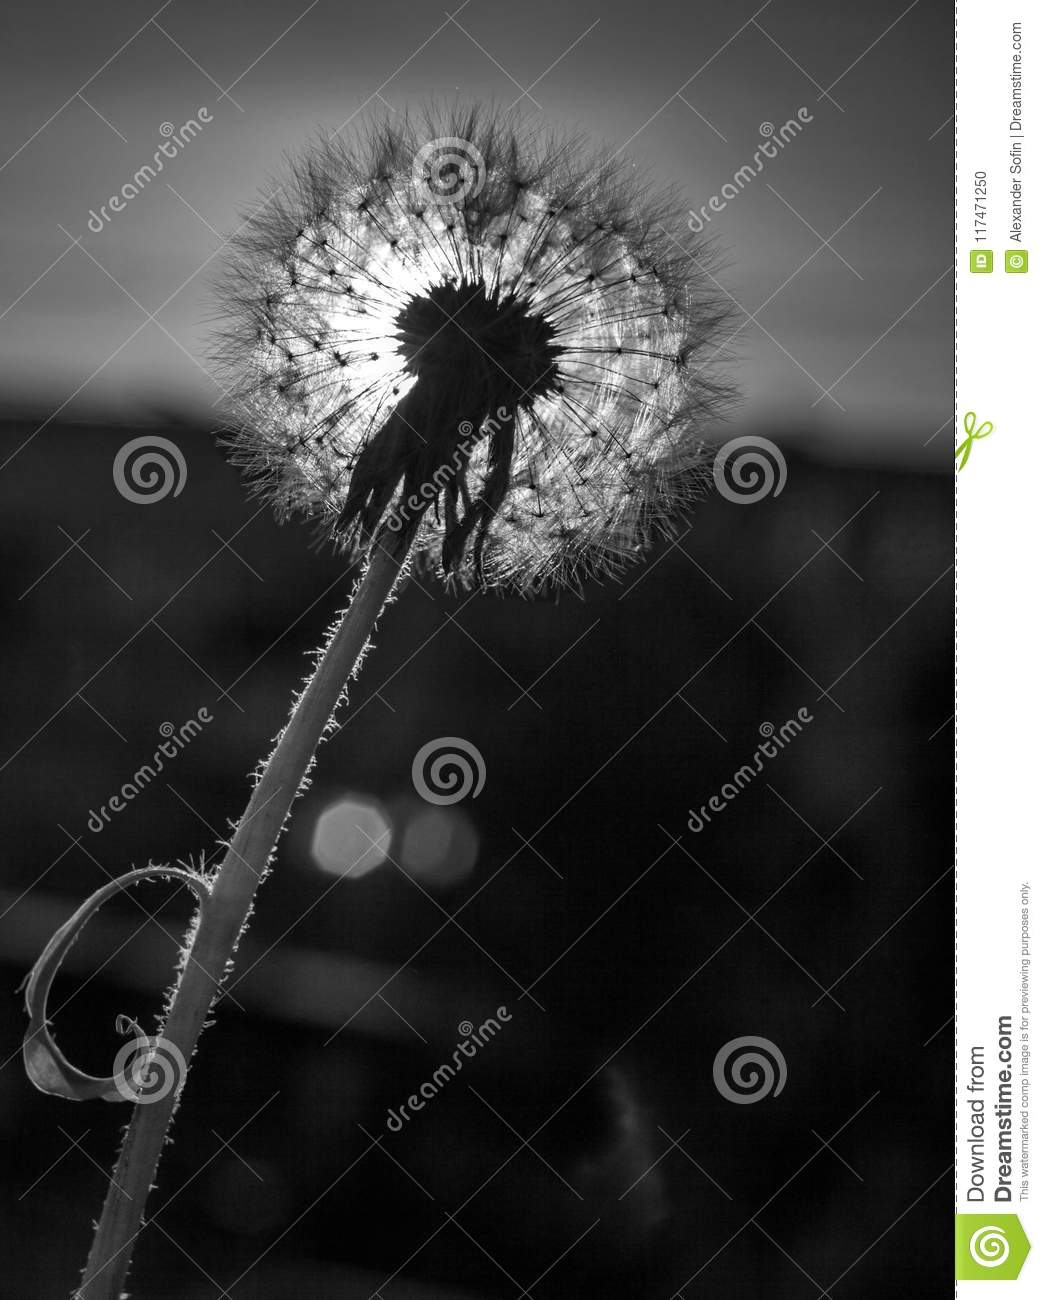 Dandelion On A Blurred Background With Sky And Backlight